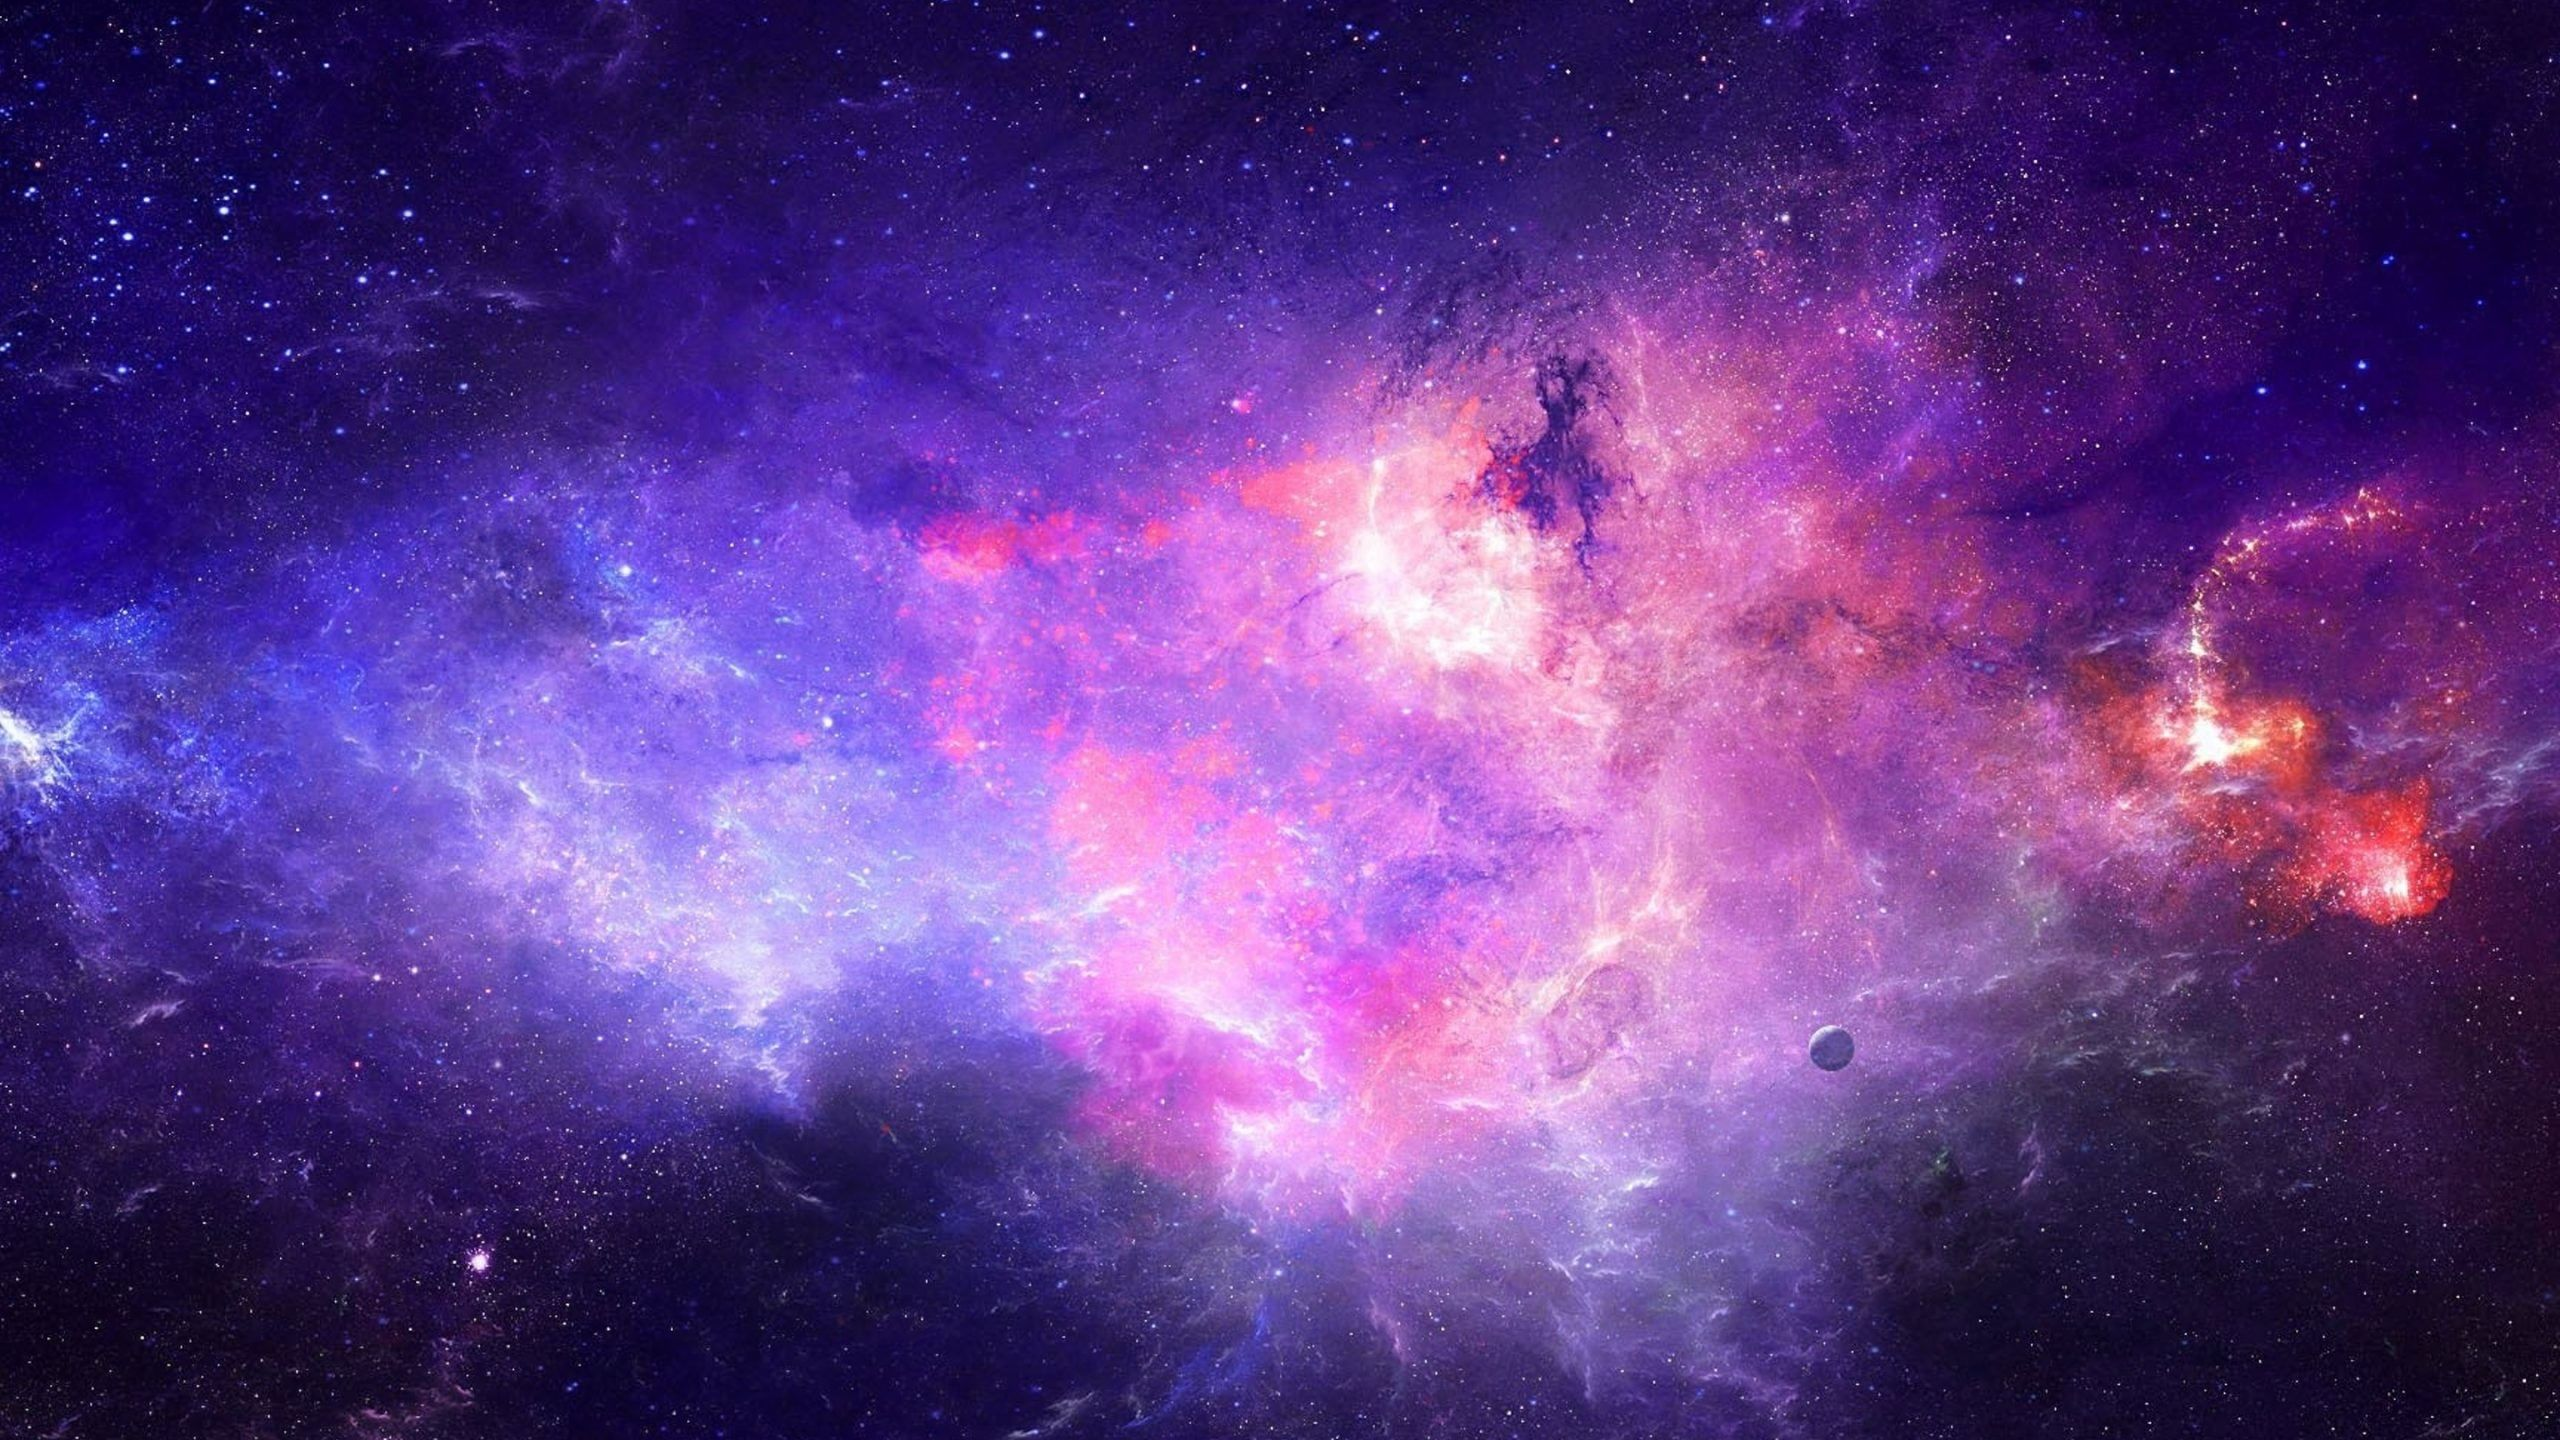 2560x1440 Galaxy Wallpapers - Top Free ...